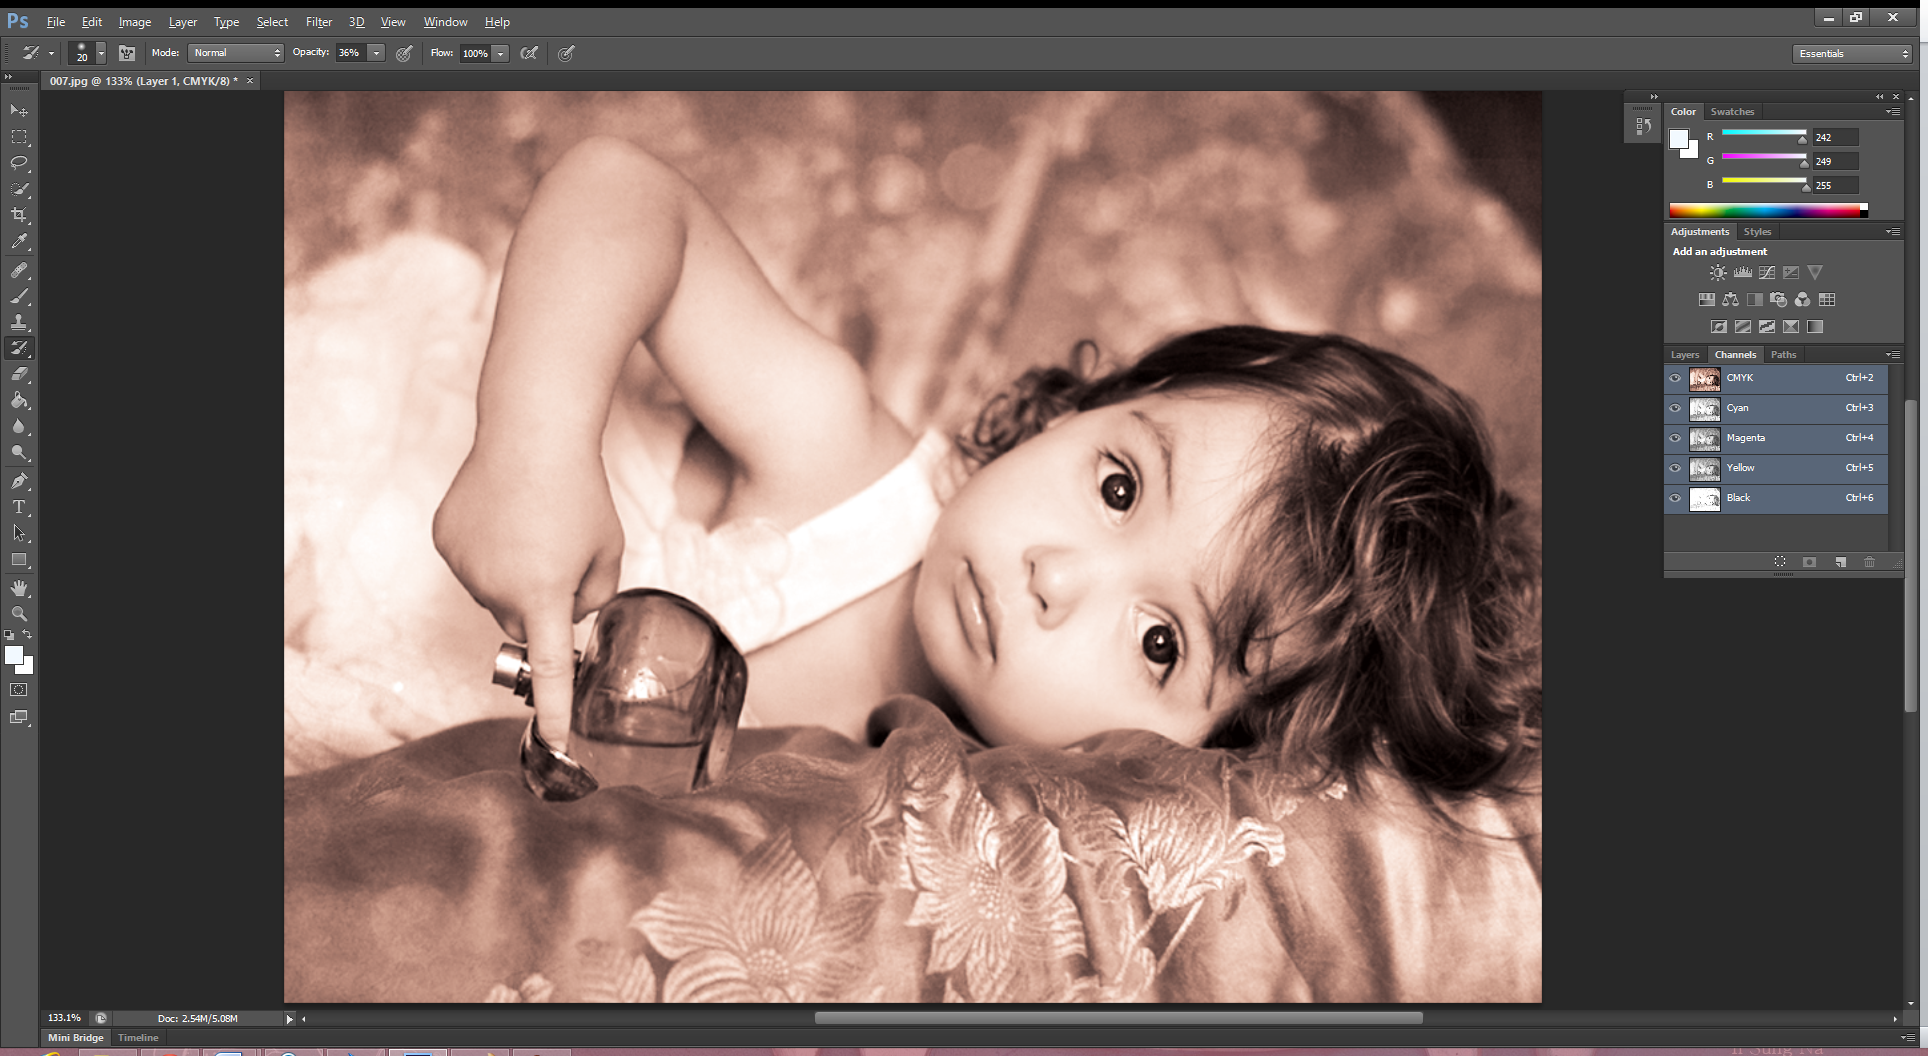 Picture of Go to Image => Adjustments => Brightness/Contrast to Set Up Brightness and Contrast.